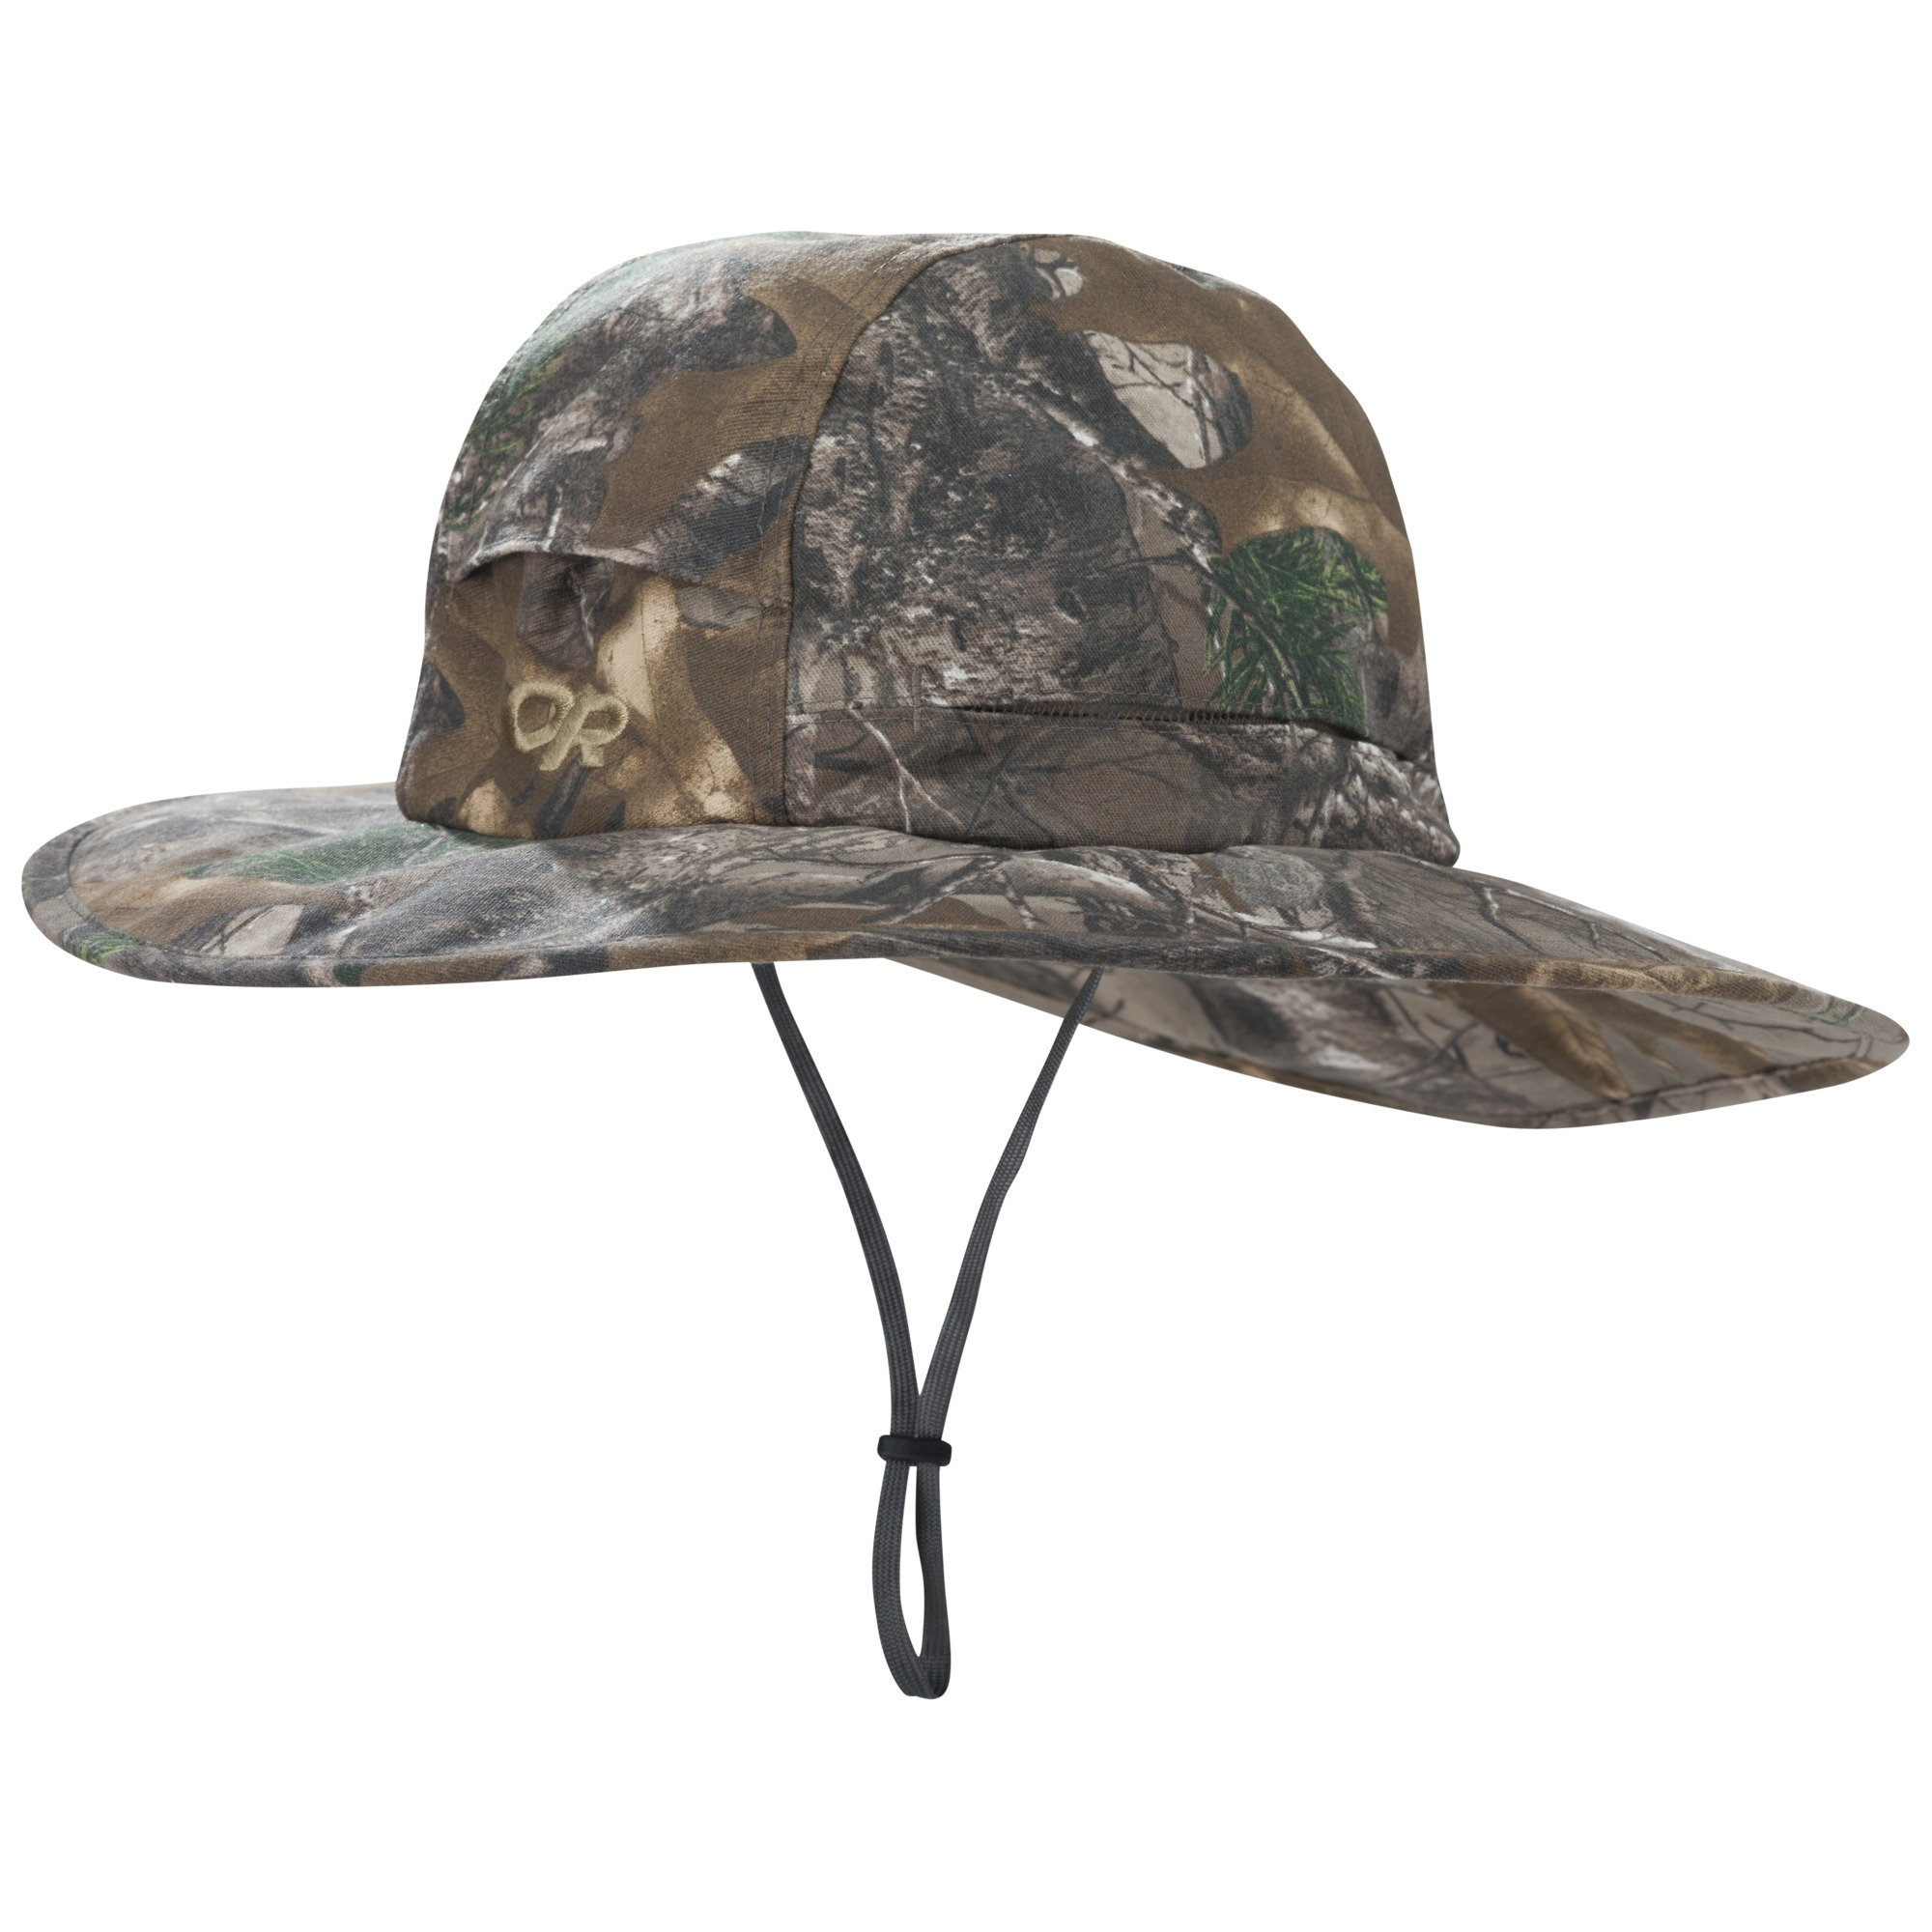 75332f1e7 Sombriolet Sun Hat Camo - realtree xtra | Outdoor Research